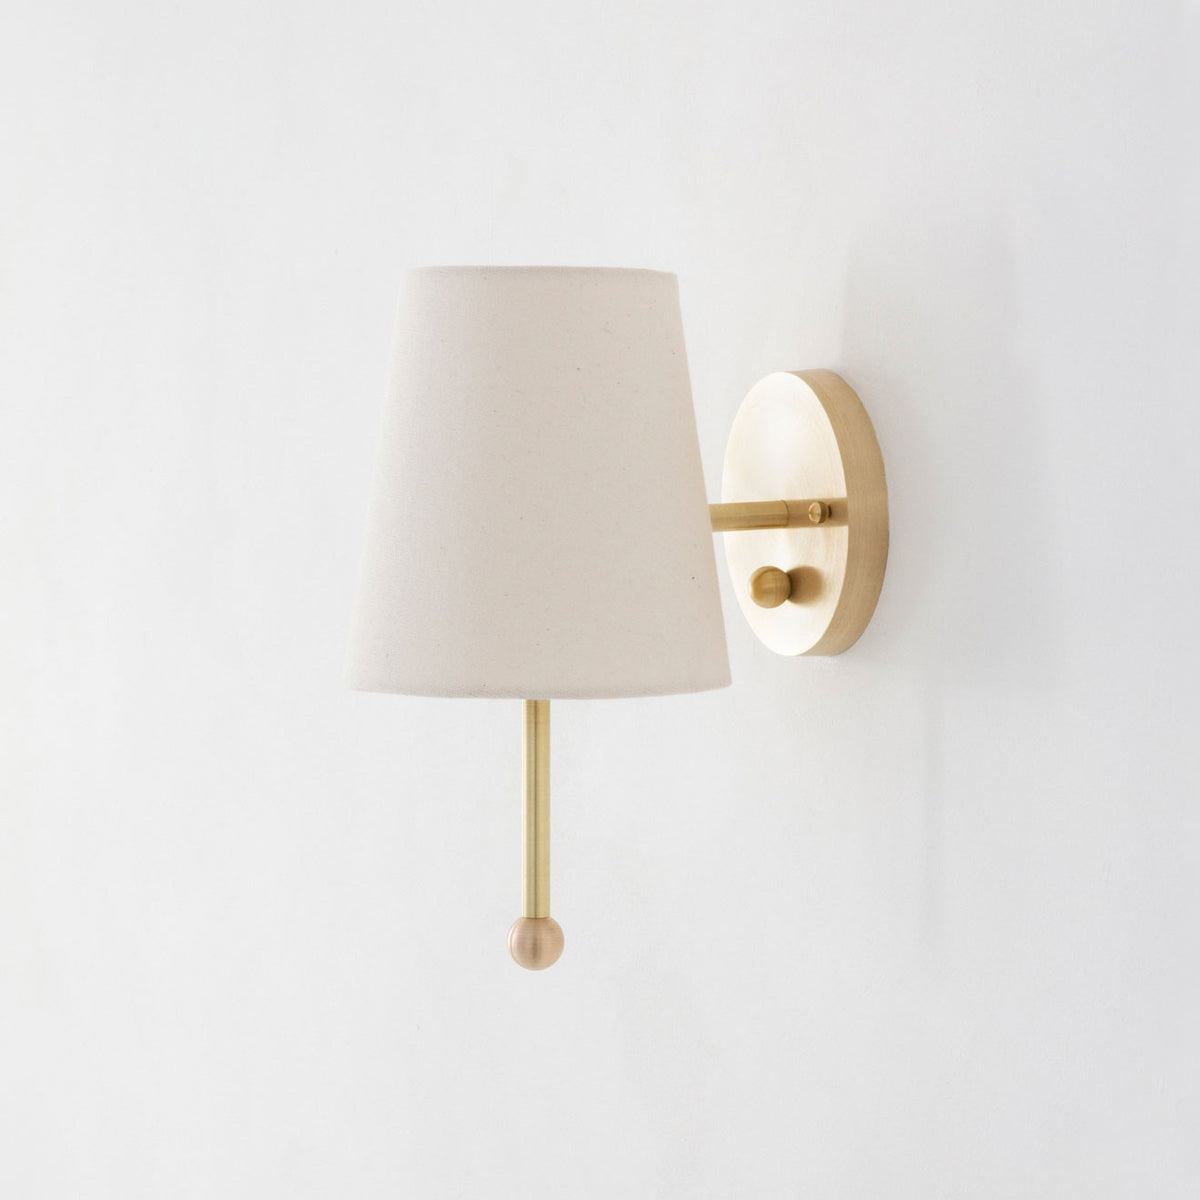 Load image into Gallery viewer, House Sconce - Lighting - Designer - Sconces – Shoppe Amber Interiors